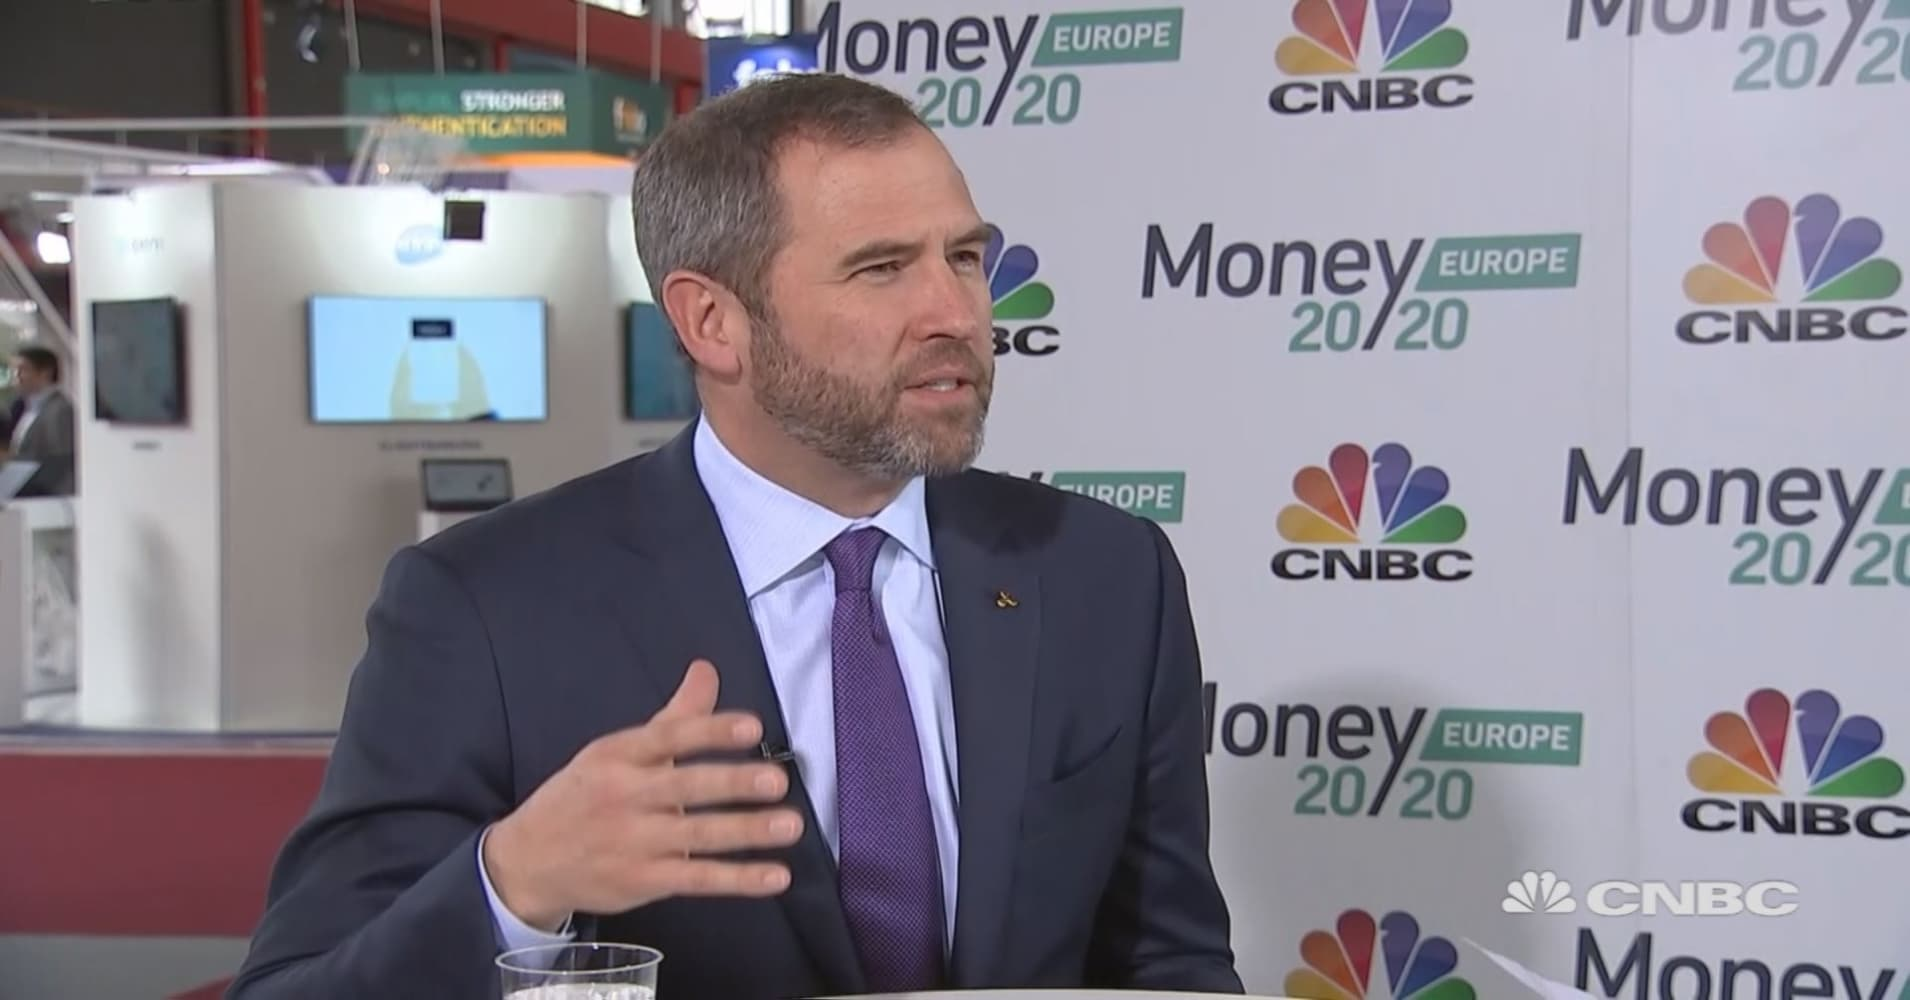 Ripple CEO: Expect dozens of banks to use our cryptocurrency next year